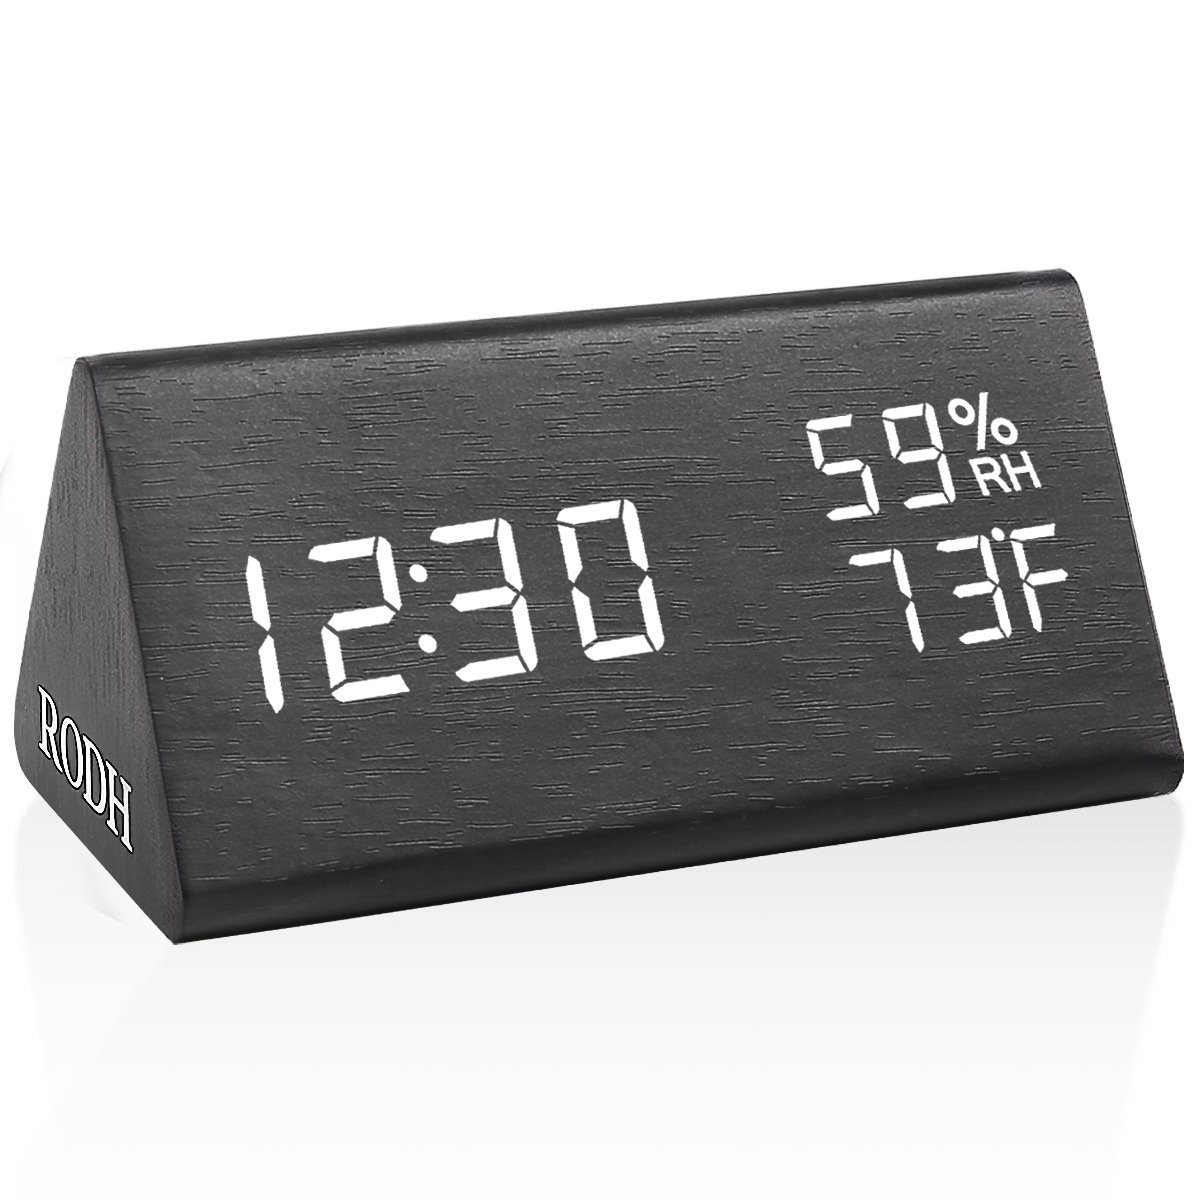 RODH Digital Wood Alarm Clock Wooden Led Light Minimalist Large Display with Humidity Temperature for Bedroom - Black